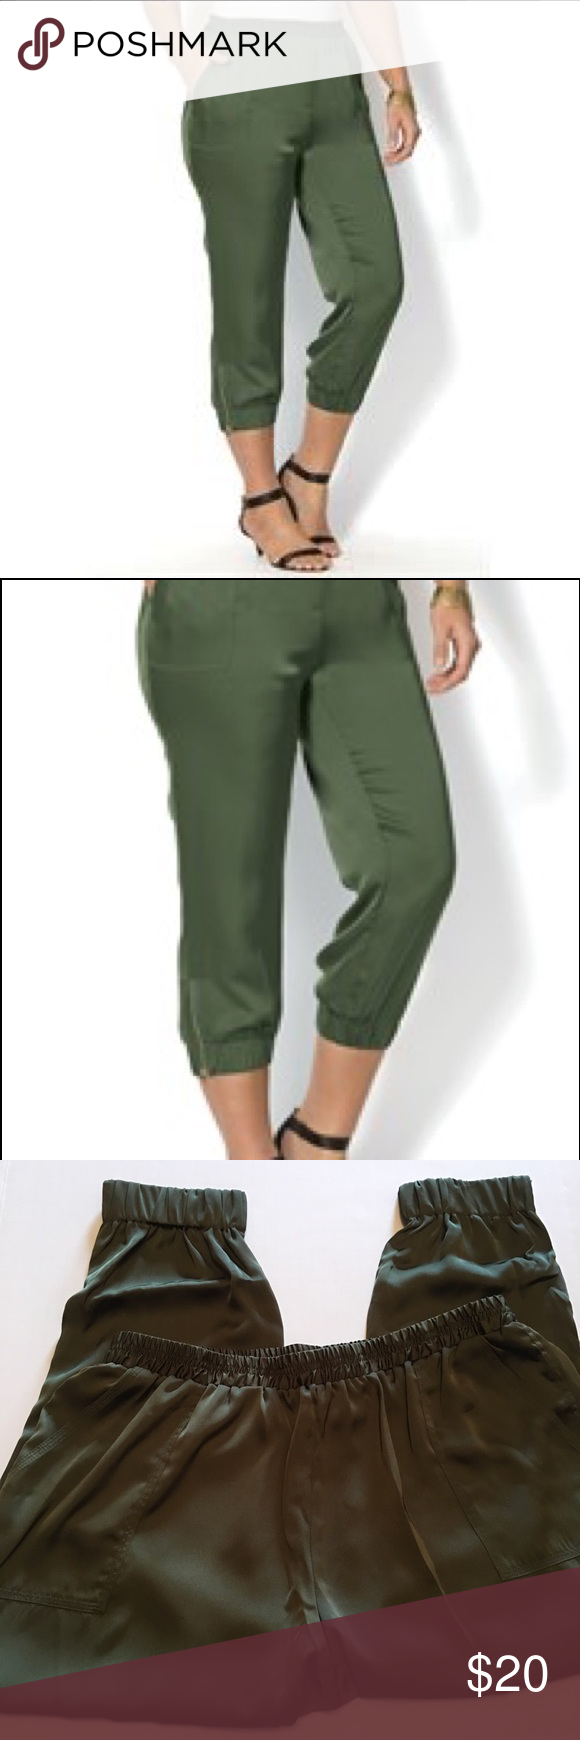 plus size satin midcalf joggers polyester satin joggers and